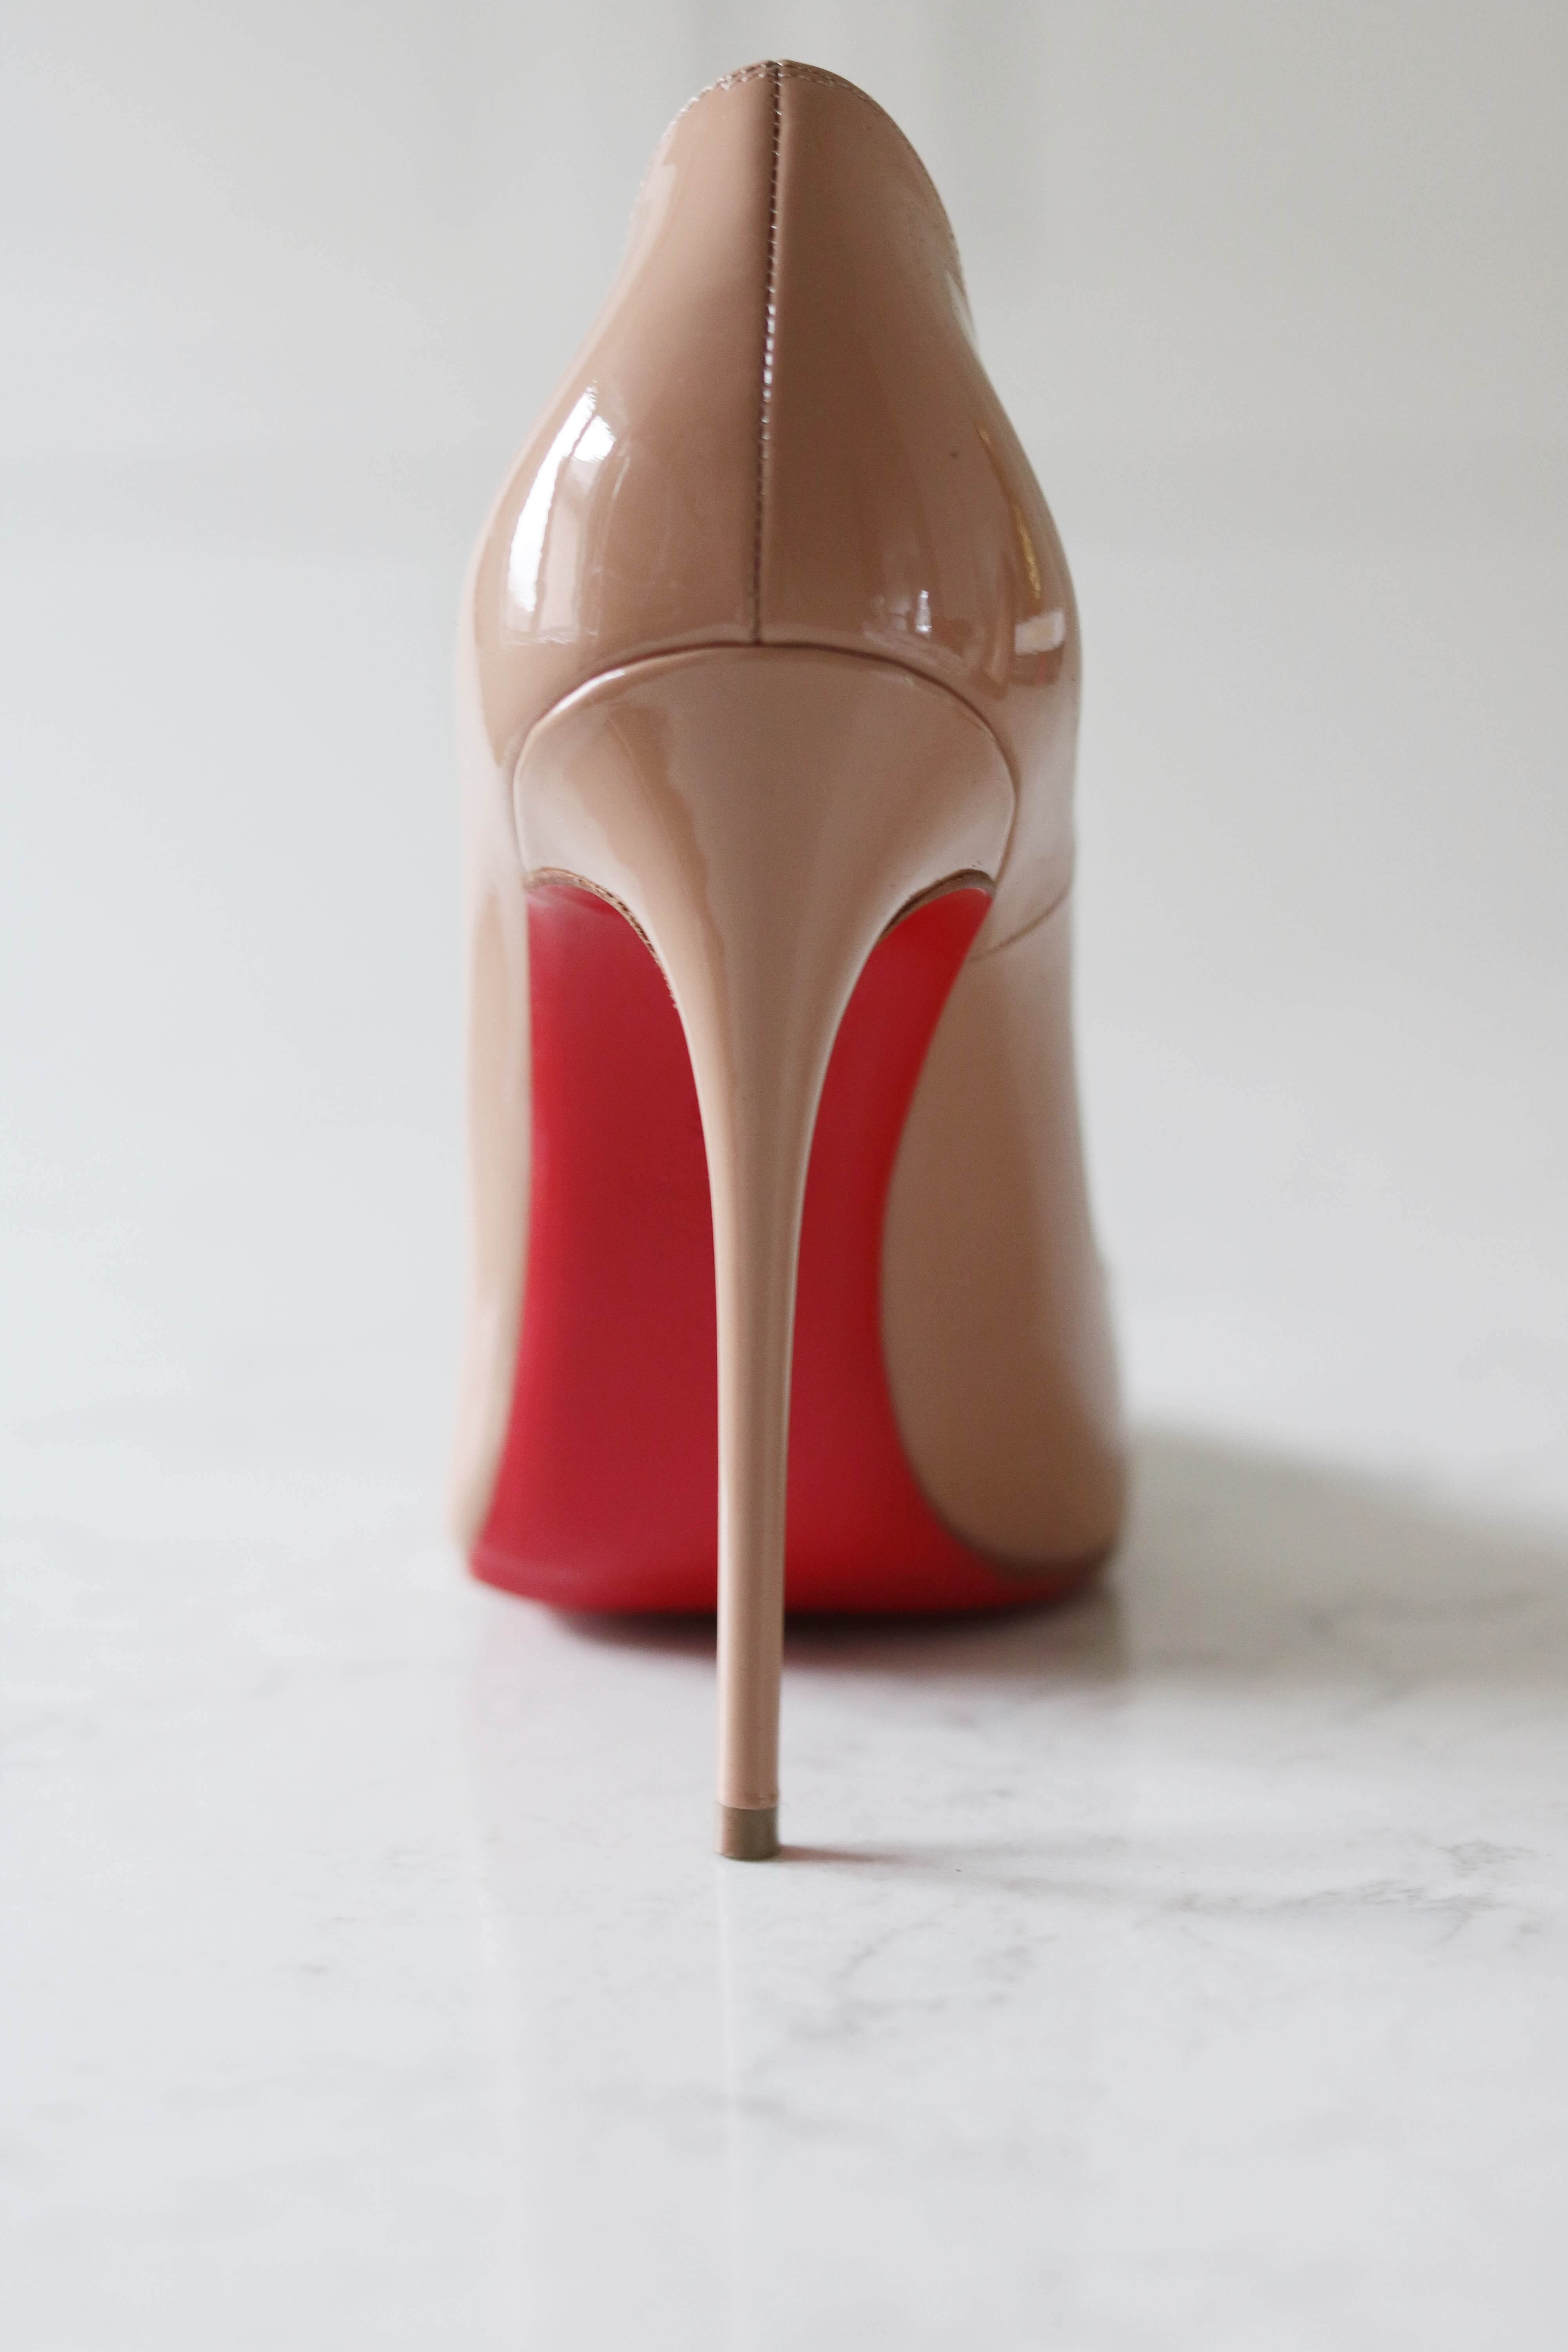 cb391ee8068e Tips on How to Take Care of your Christian Louboutin Shoes ...